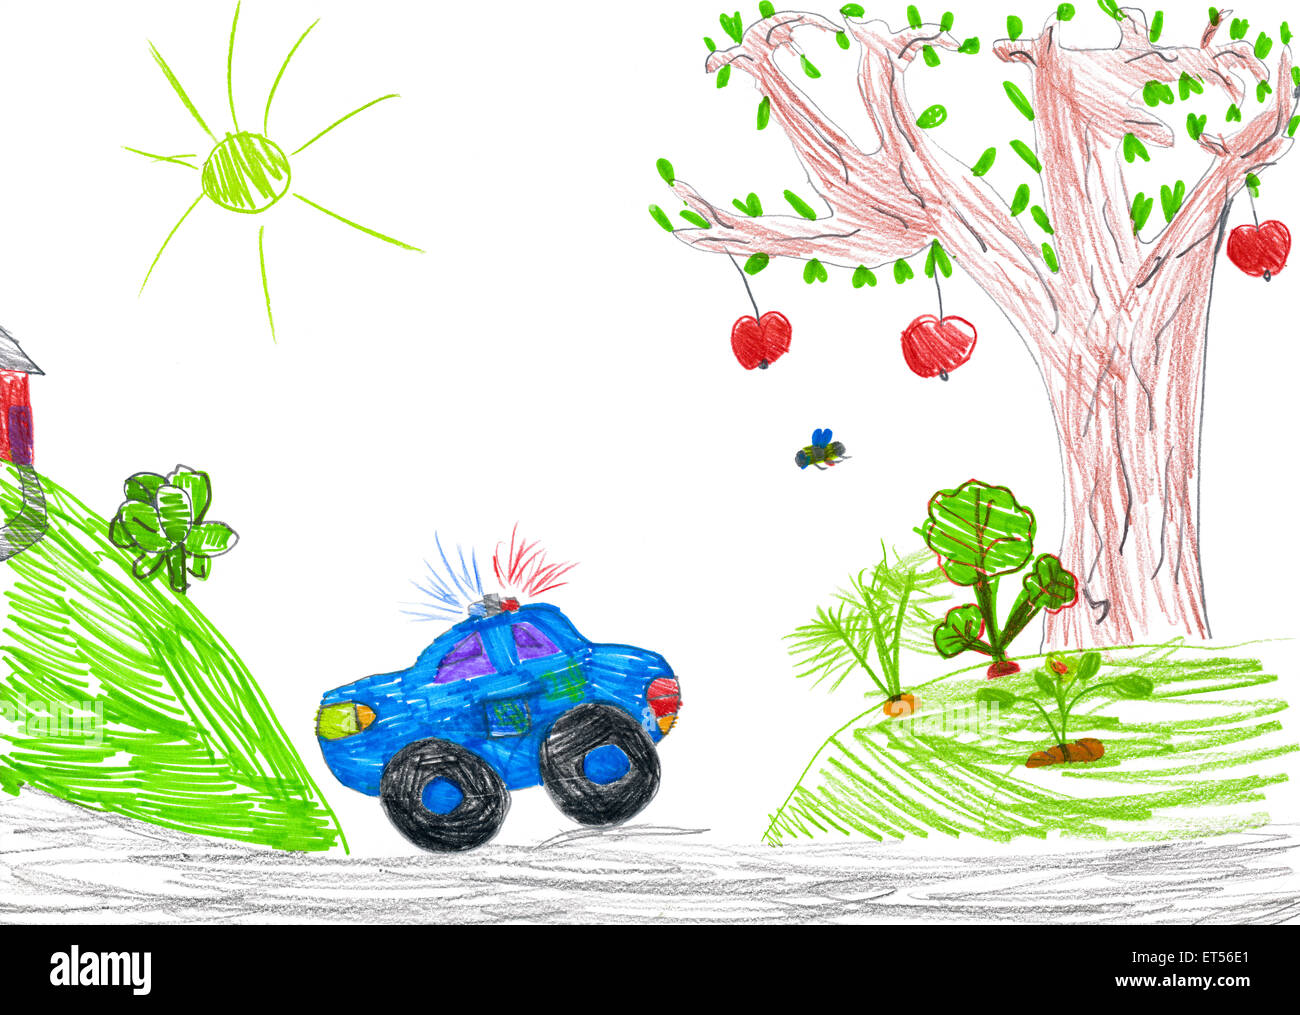 Uncategorized Child Drawing police car and nature child drawing stock photo royalty free drawing